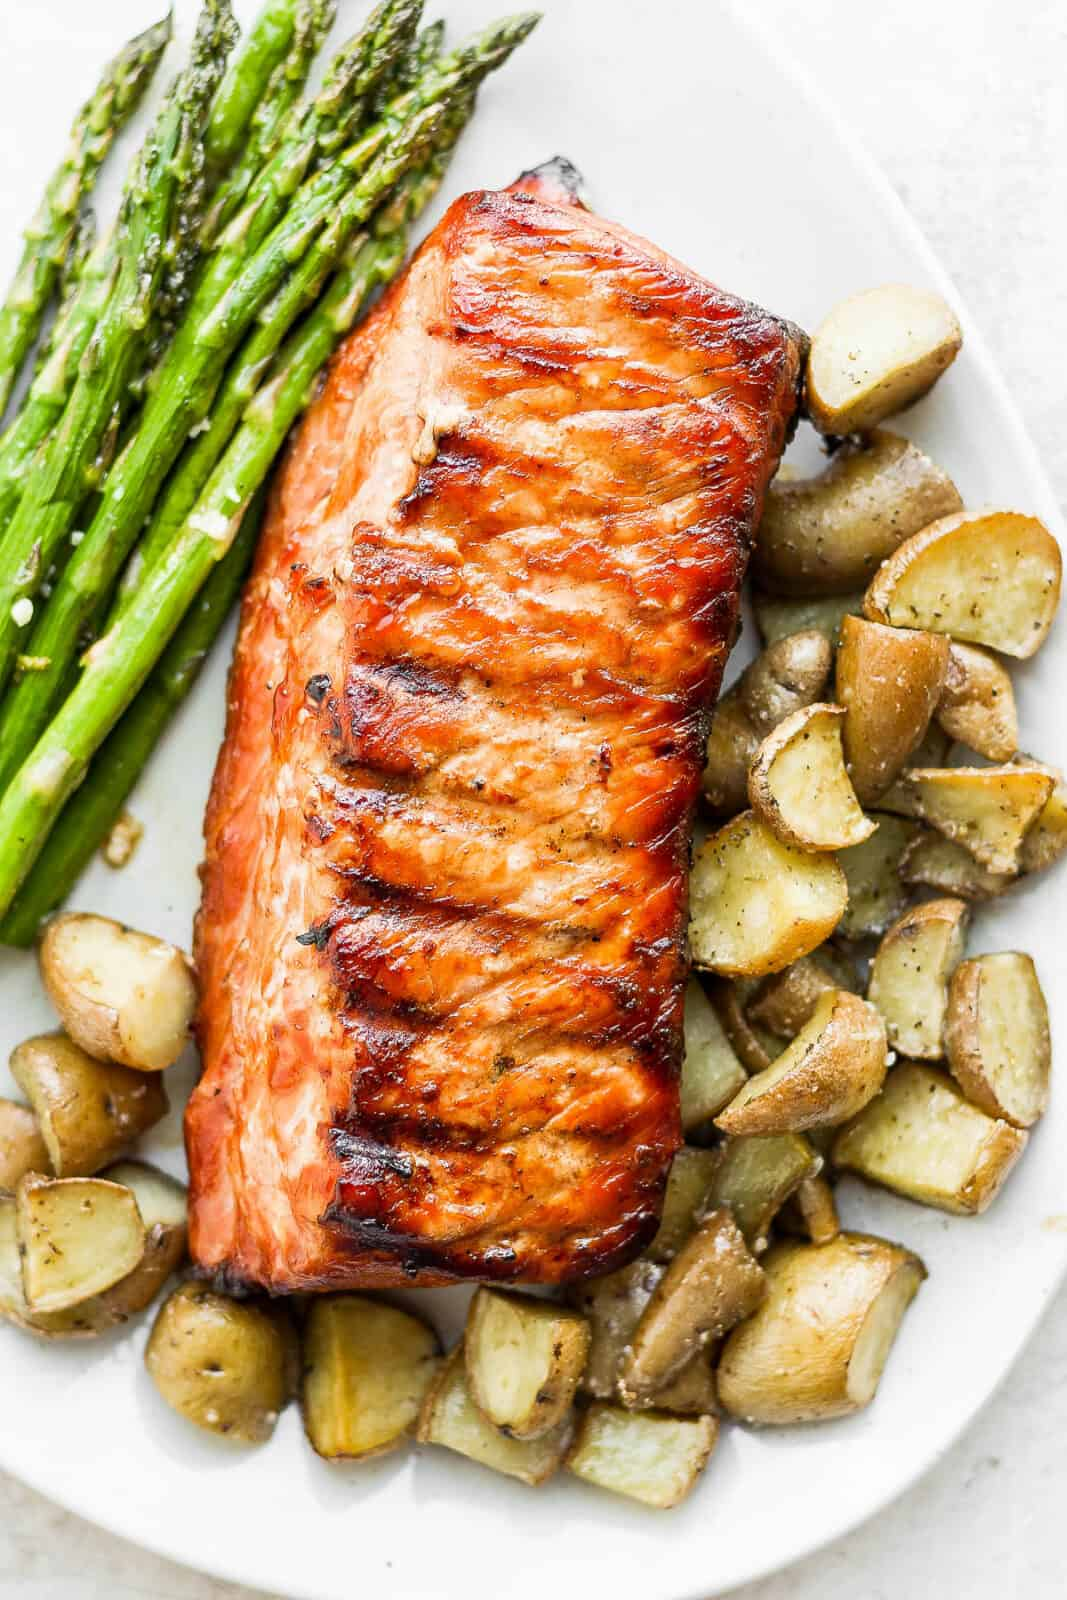 A platter with smoked potatoes, smoked asparagus and pork loin.